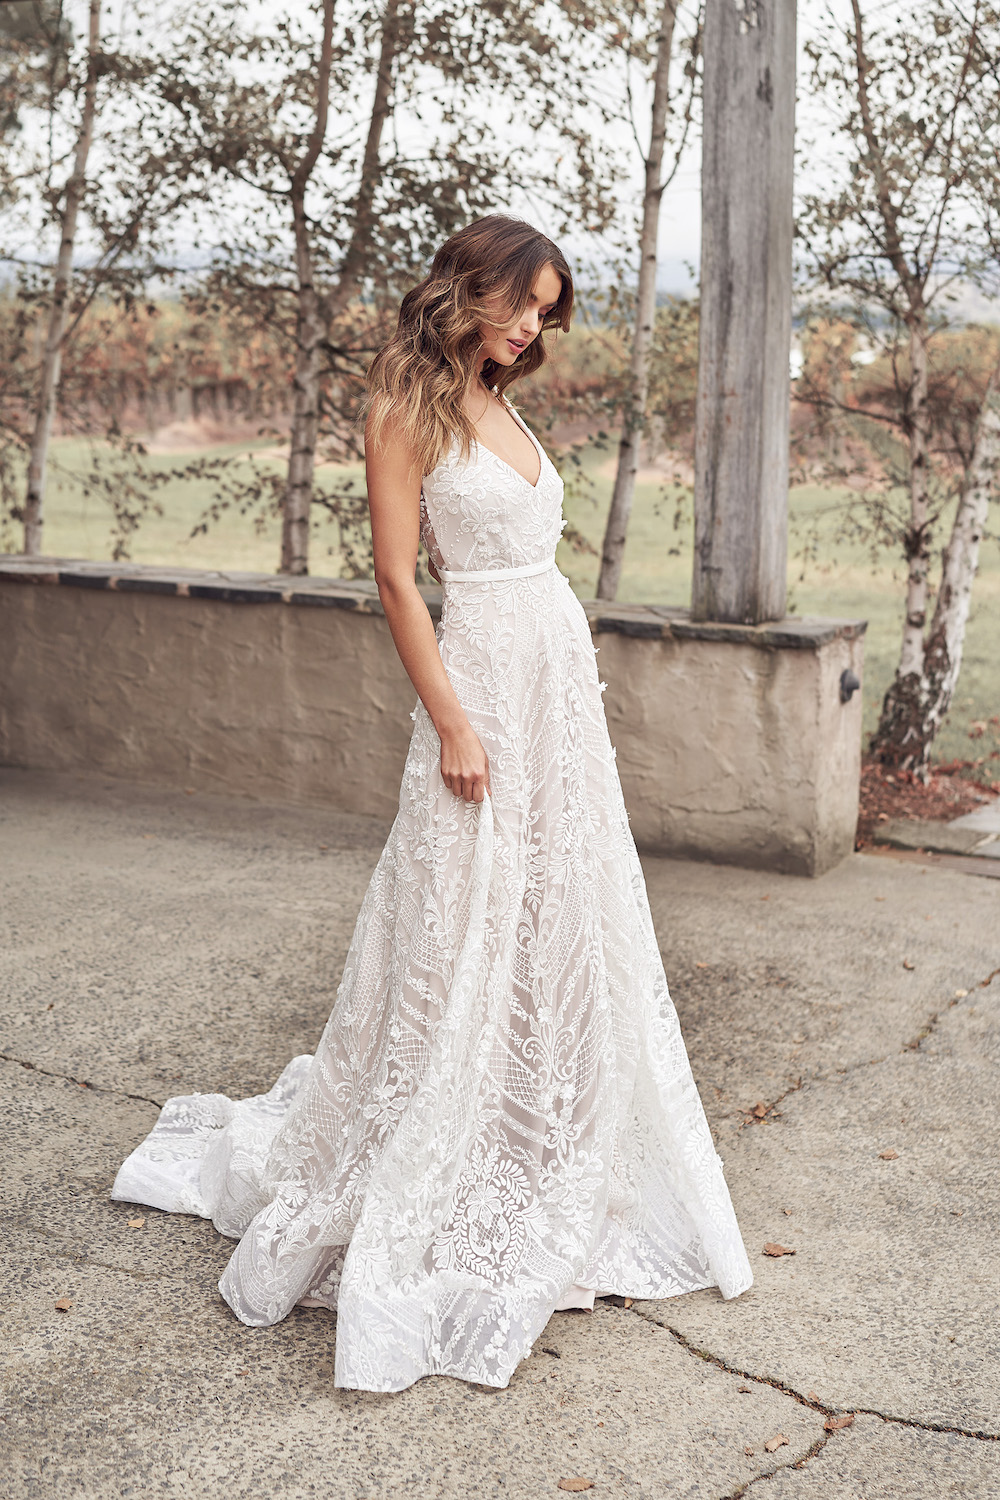 Lexi Empress Bridal Dress | Anna Campbell Lumiere Collection | LOVE FIND CO. Bridal Directory